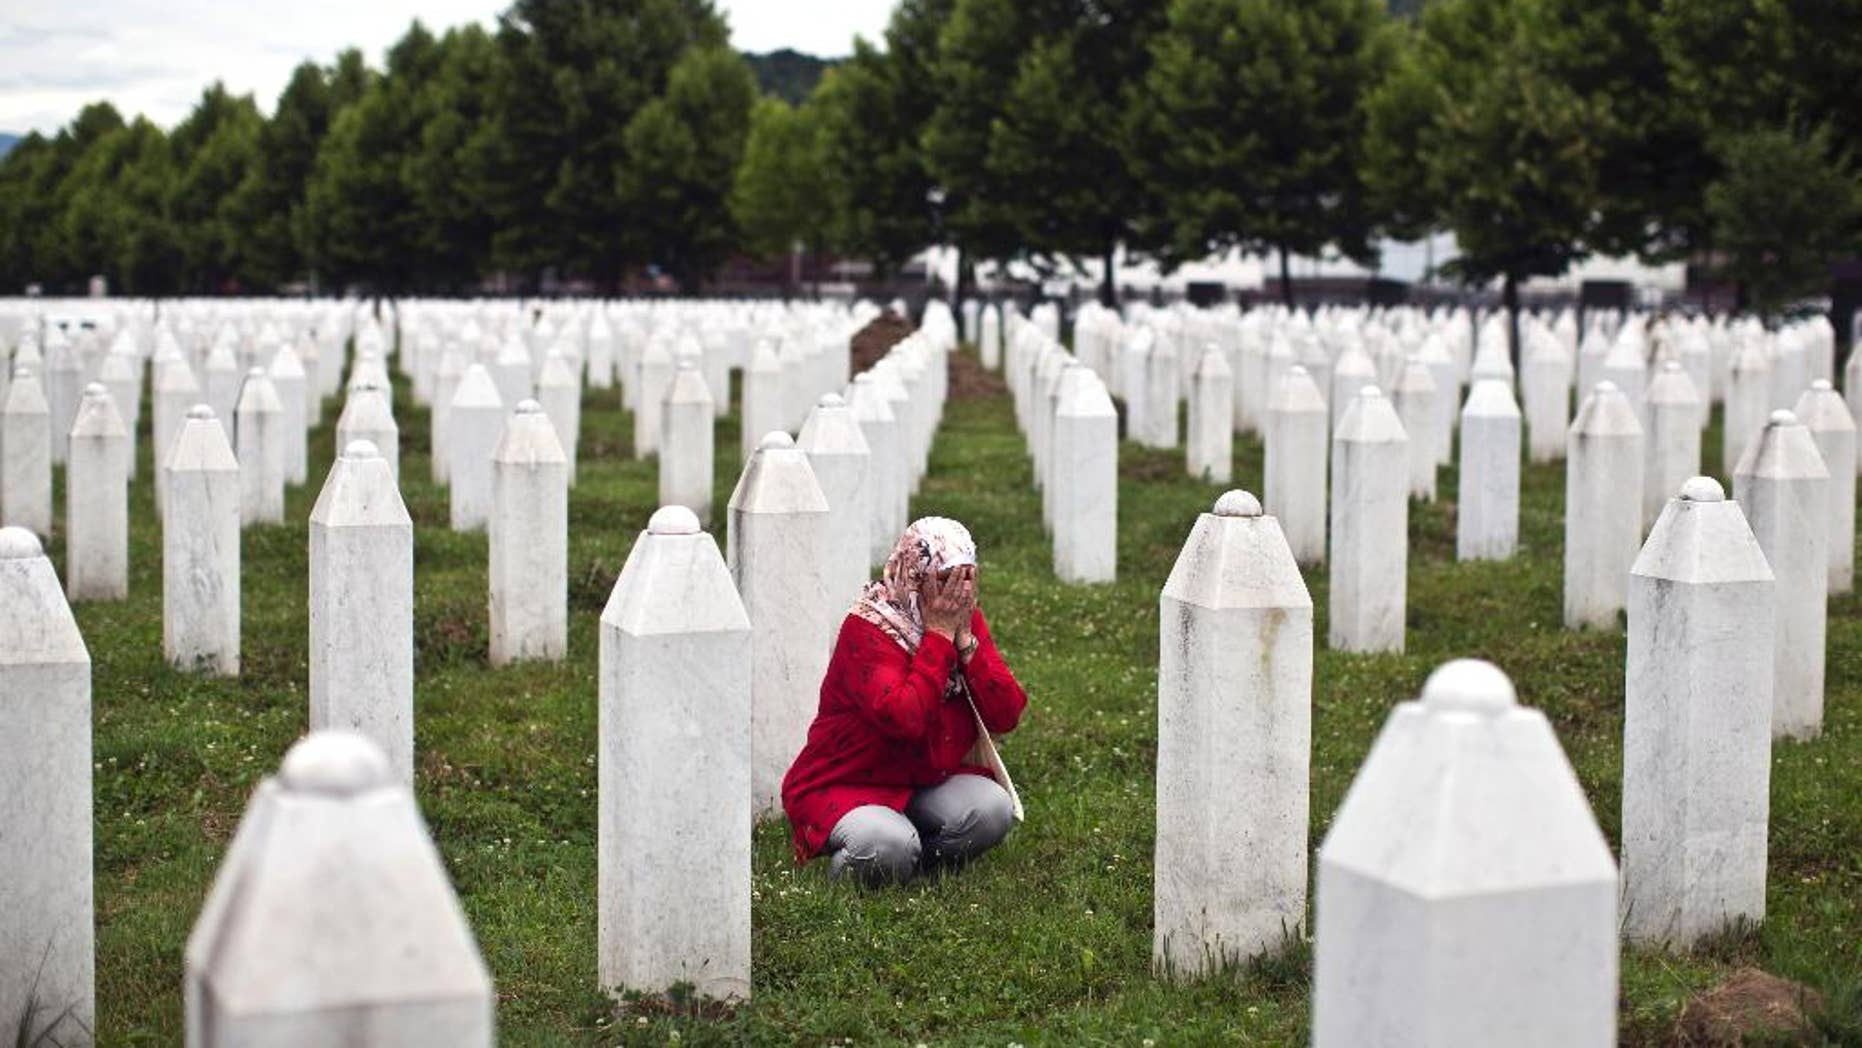 A woman prays next to a grave of her relative at the Potocari memorial complex, in Potocari, close to Srebrenica, 150 kilometers northeast of Sarajevo, Thursday, July 9, 2015. The 20th anniversary of the Srebrenica massacre, the worst crime in Europe after the Nazi era, will be marked on Saturday, July 11, 2015. (AP Photo/Marko Drobnjakovic)